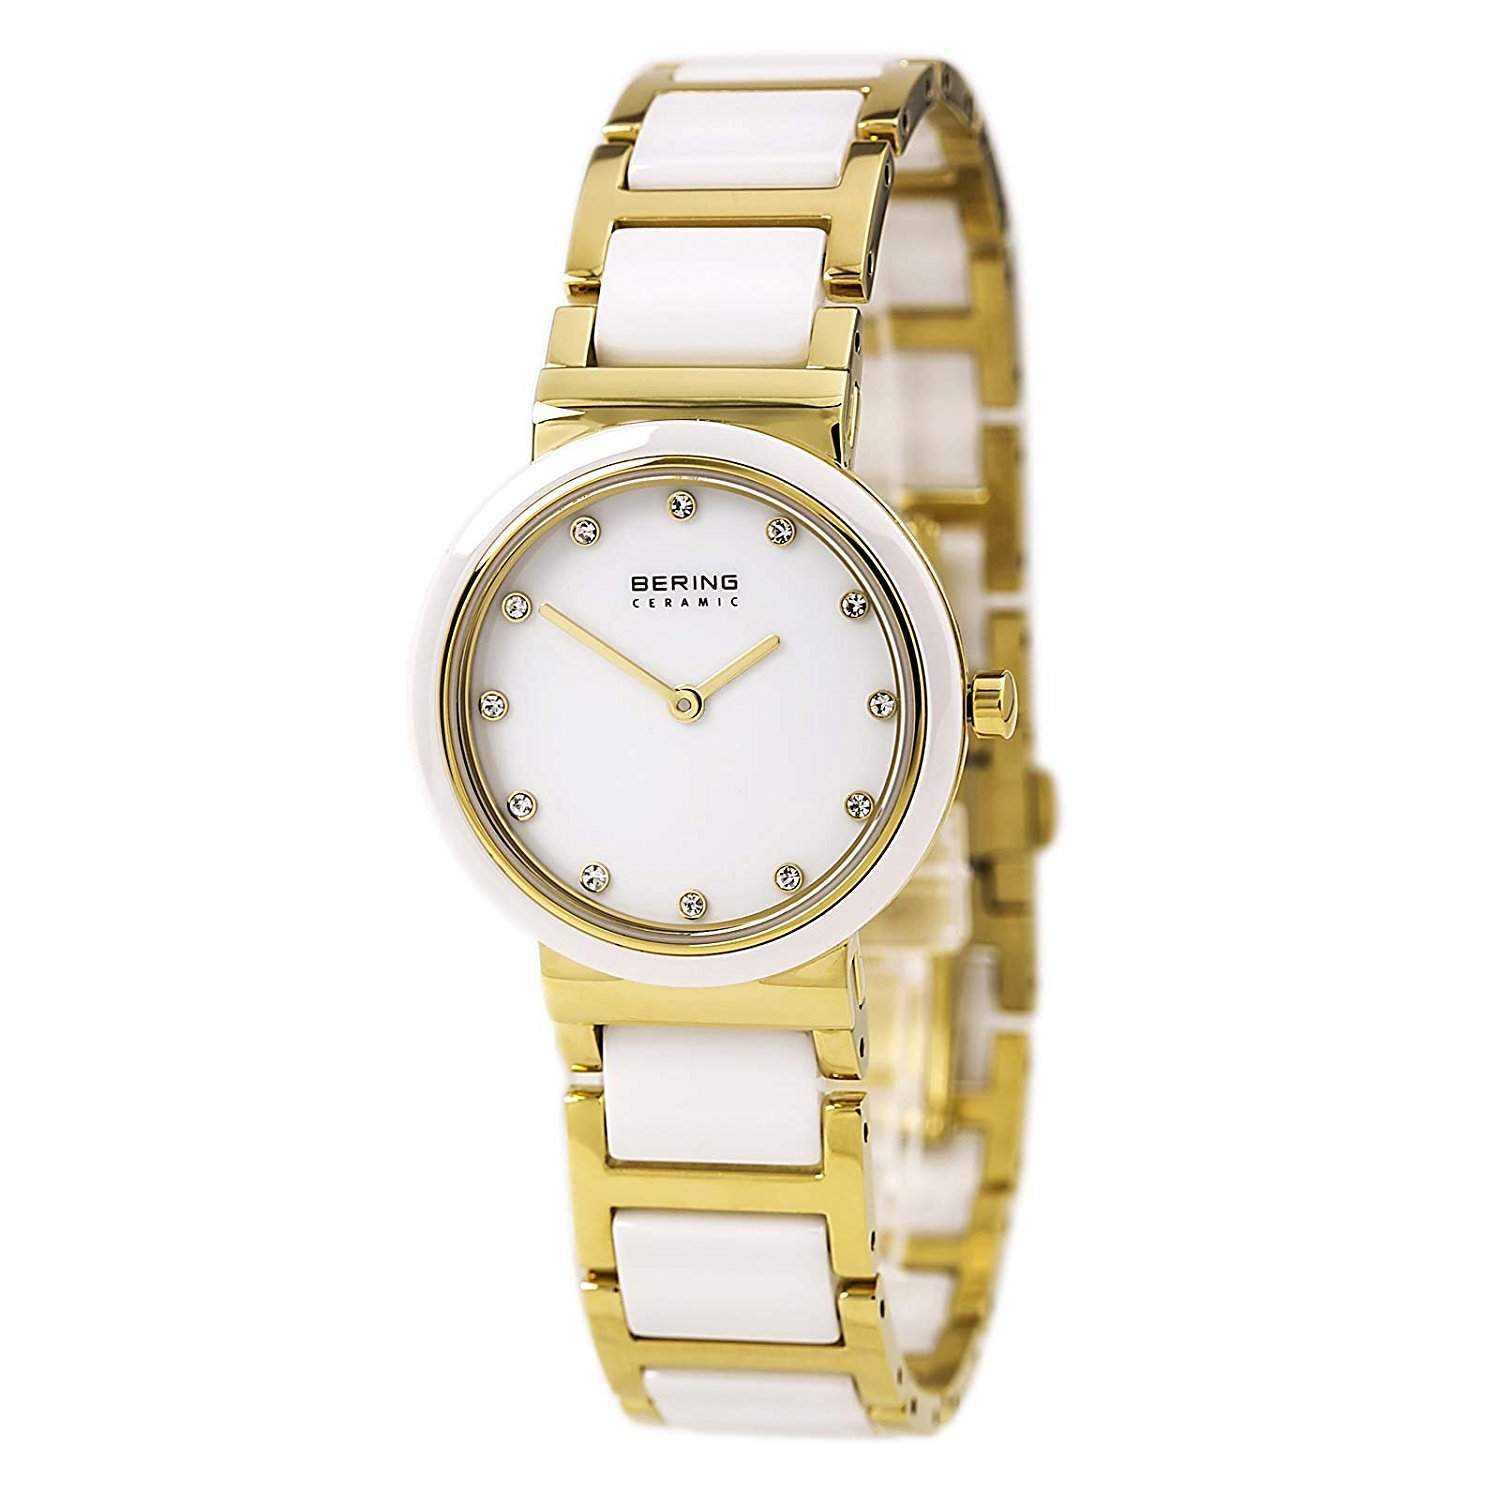 Bering Time Damen-Armbanduhr Ceramic Analog Quarz 10729-751